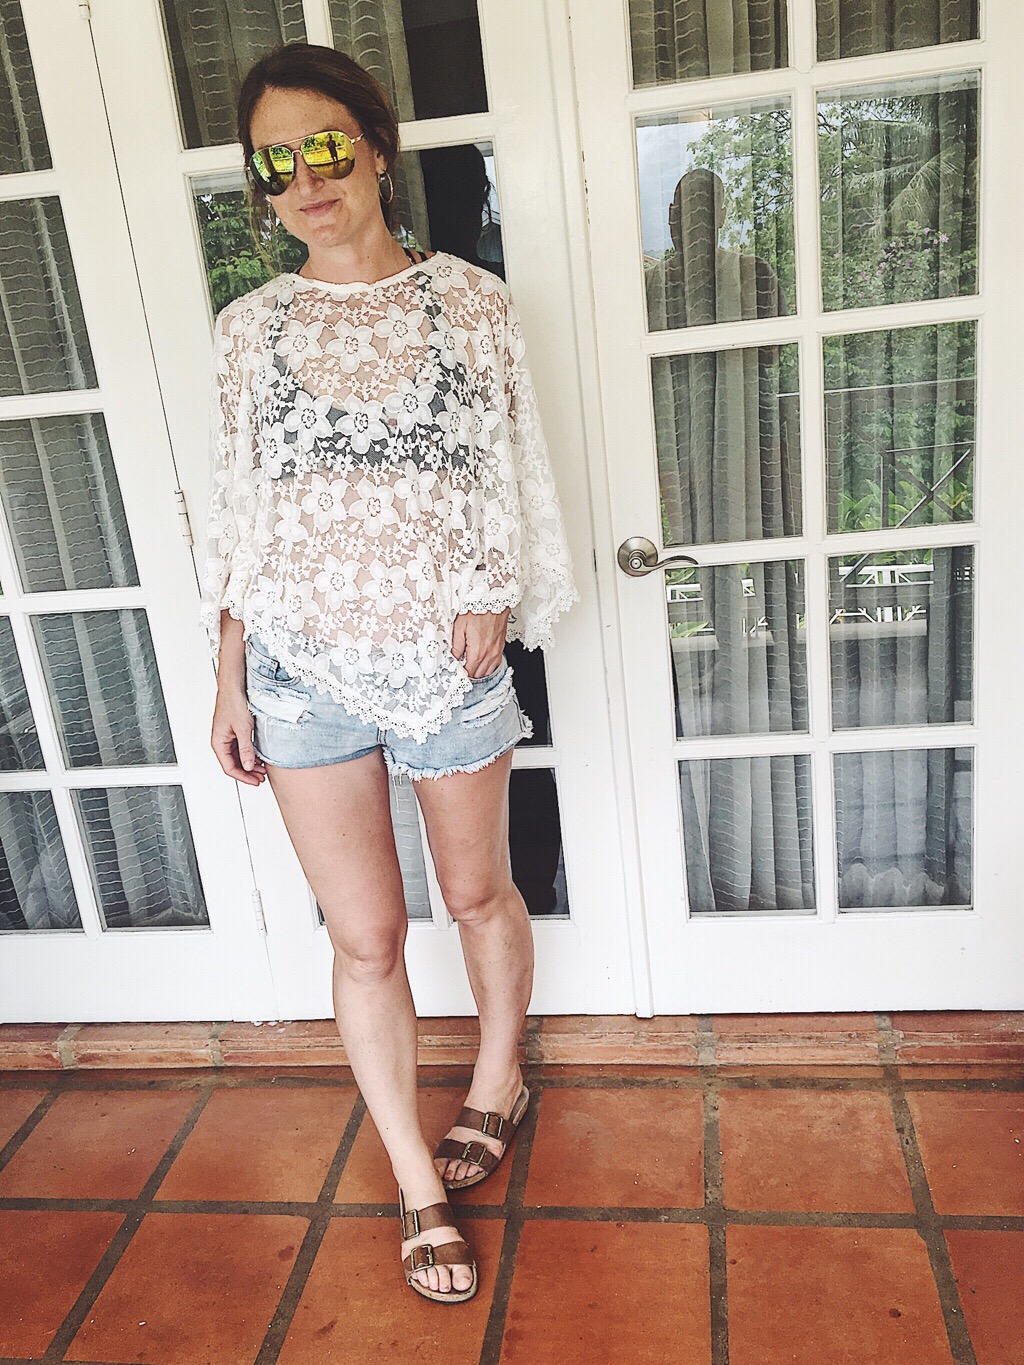 Lace top with denim cutoffs make for a perfect swimsuit cover-up!